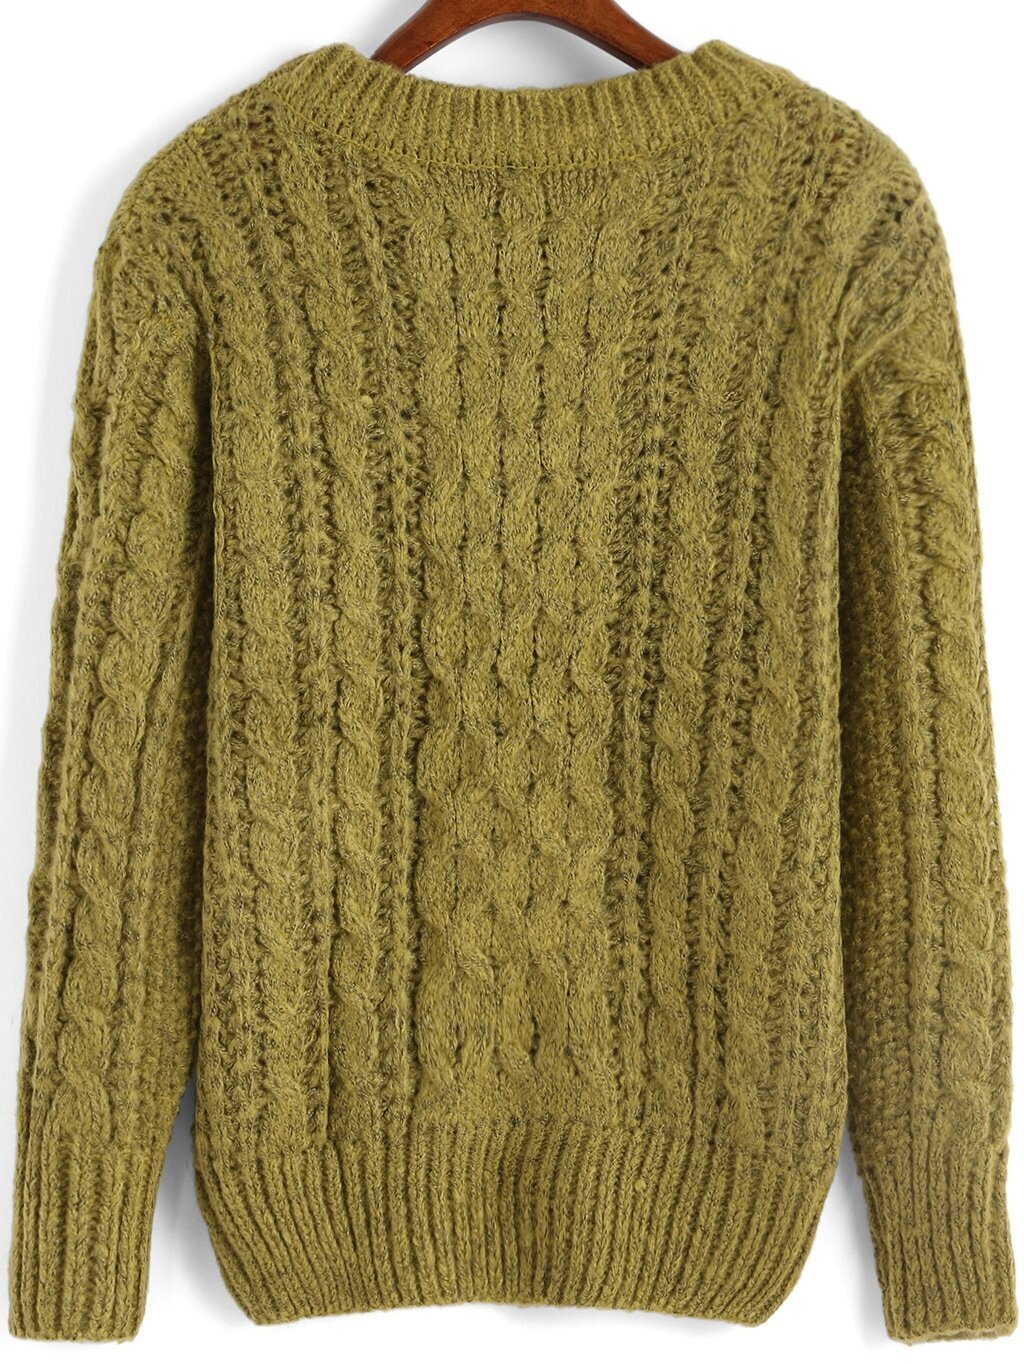 Knitting Sweaters In The Round : Green round neck cable knit sweater shein sheinside